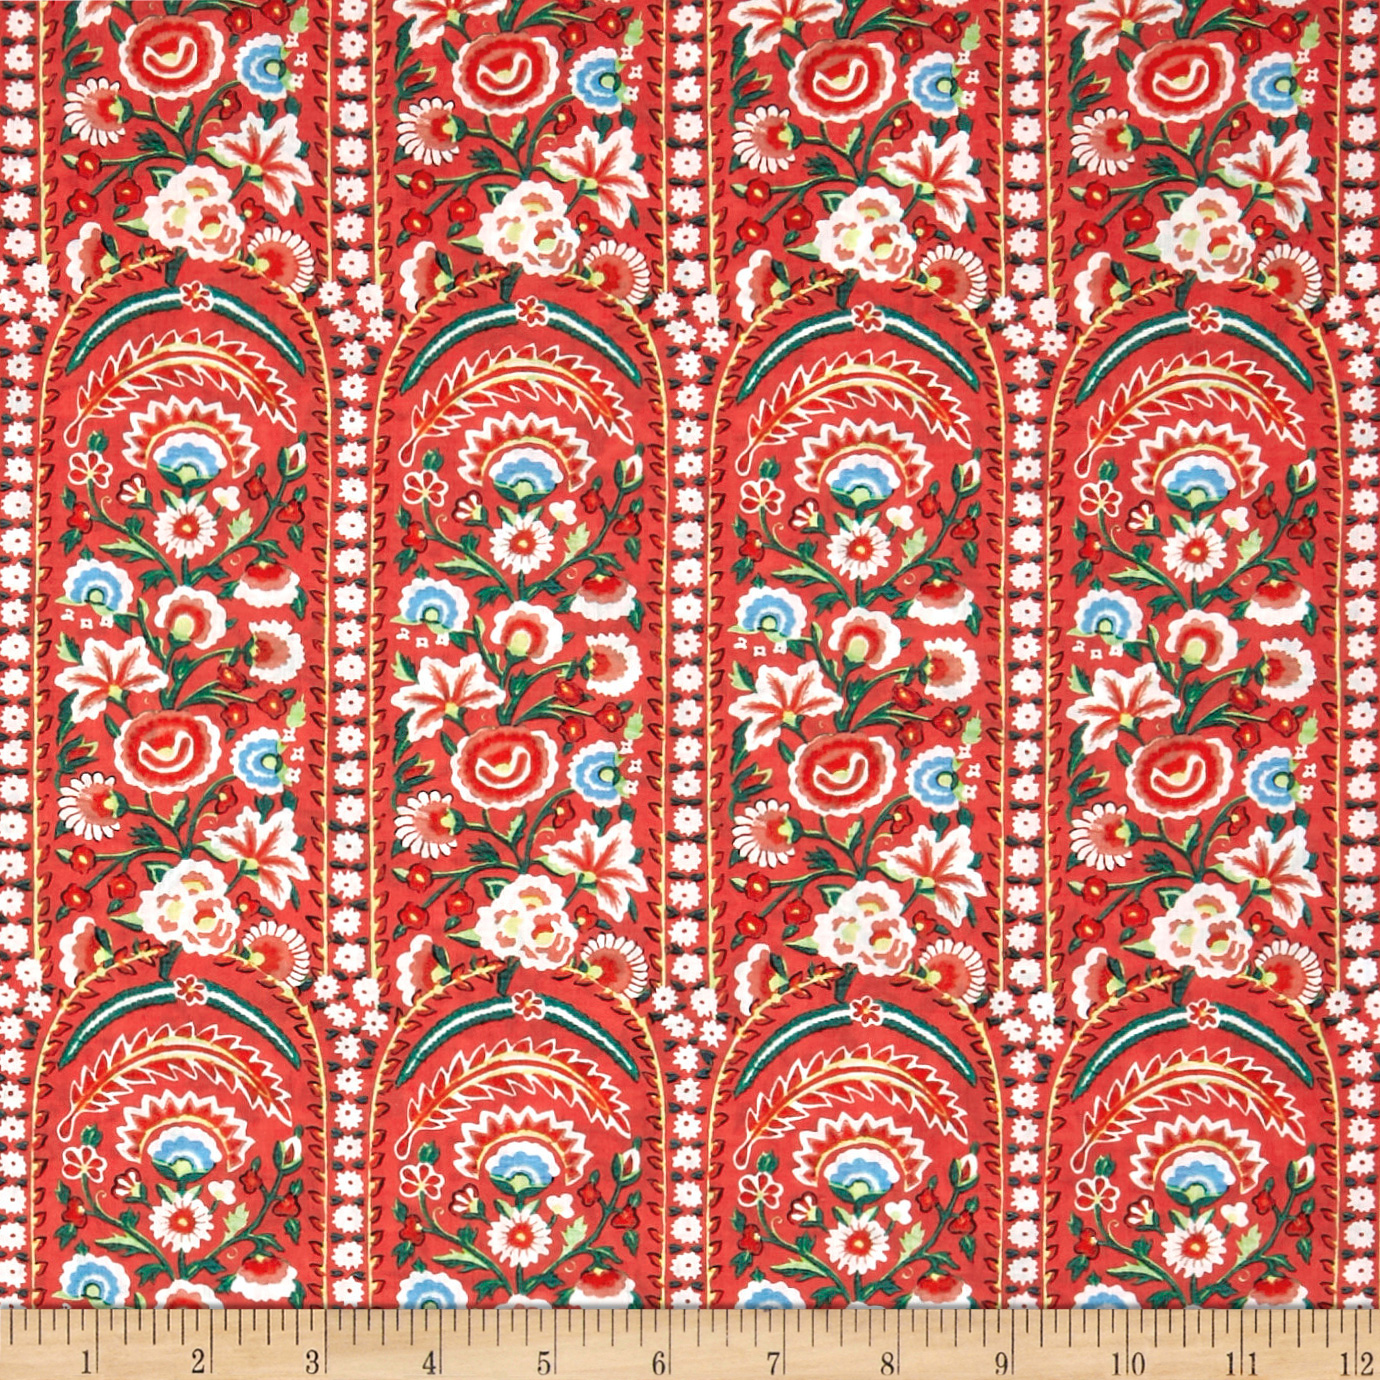 Image of Liberty of London Tana Lawn Von Trapp Coral Fabric